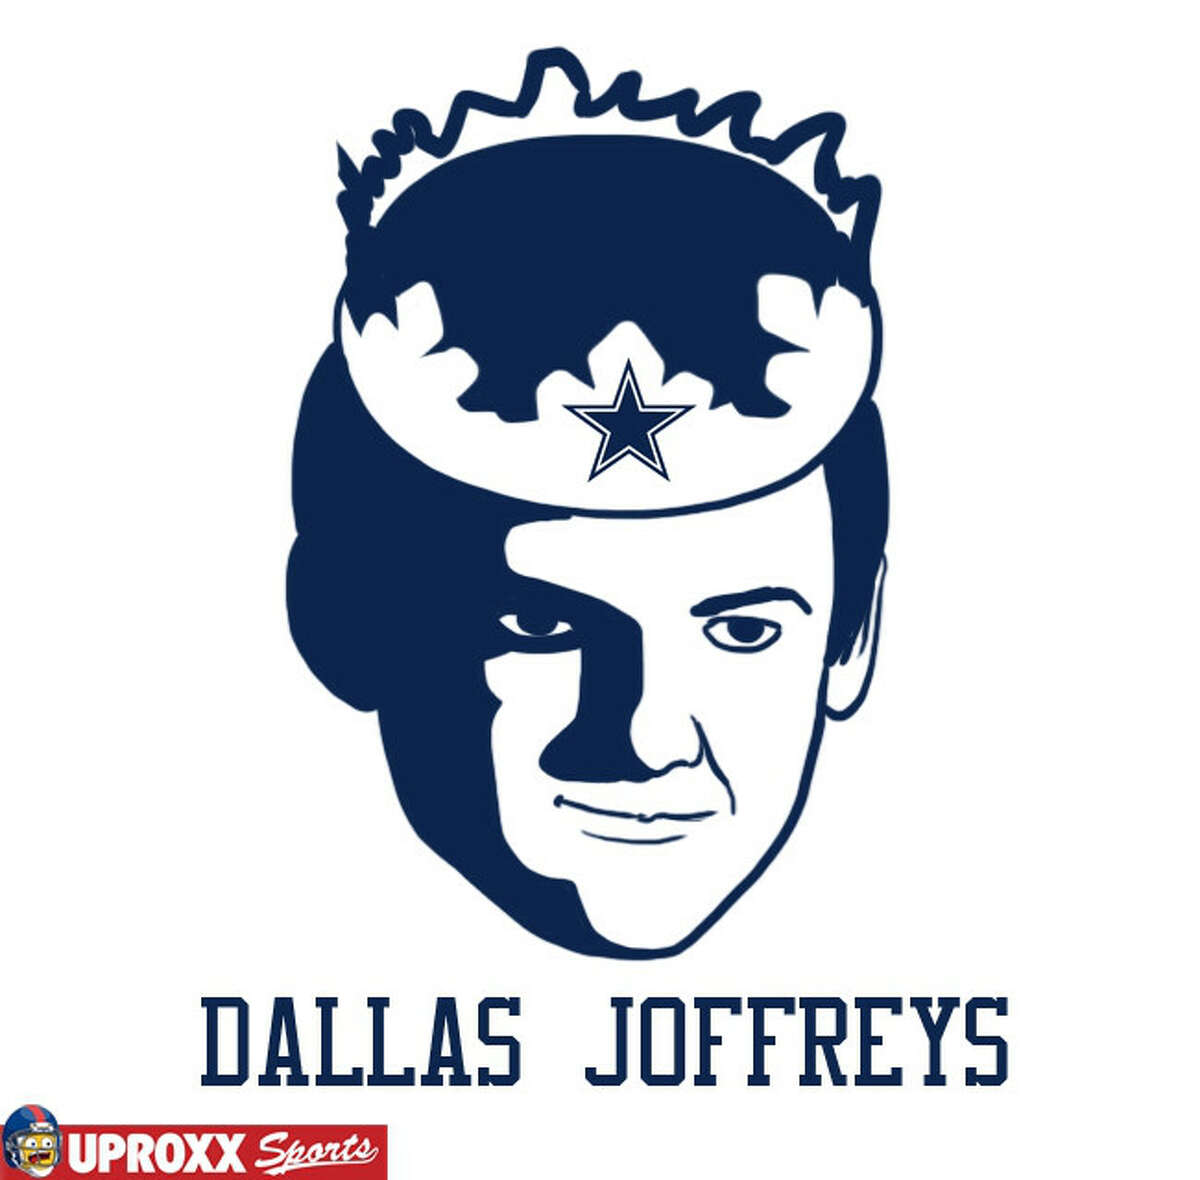 Dallas Cowboys - Joffrey Baratheon (Lannister) An overinflated sense of entitlement, a massive ego. Joffrey thinks Joffrey is the greatest, but really everyone just hates him.